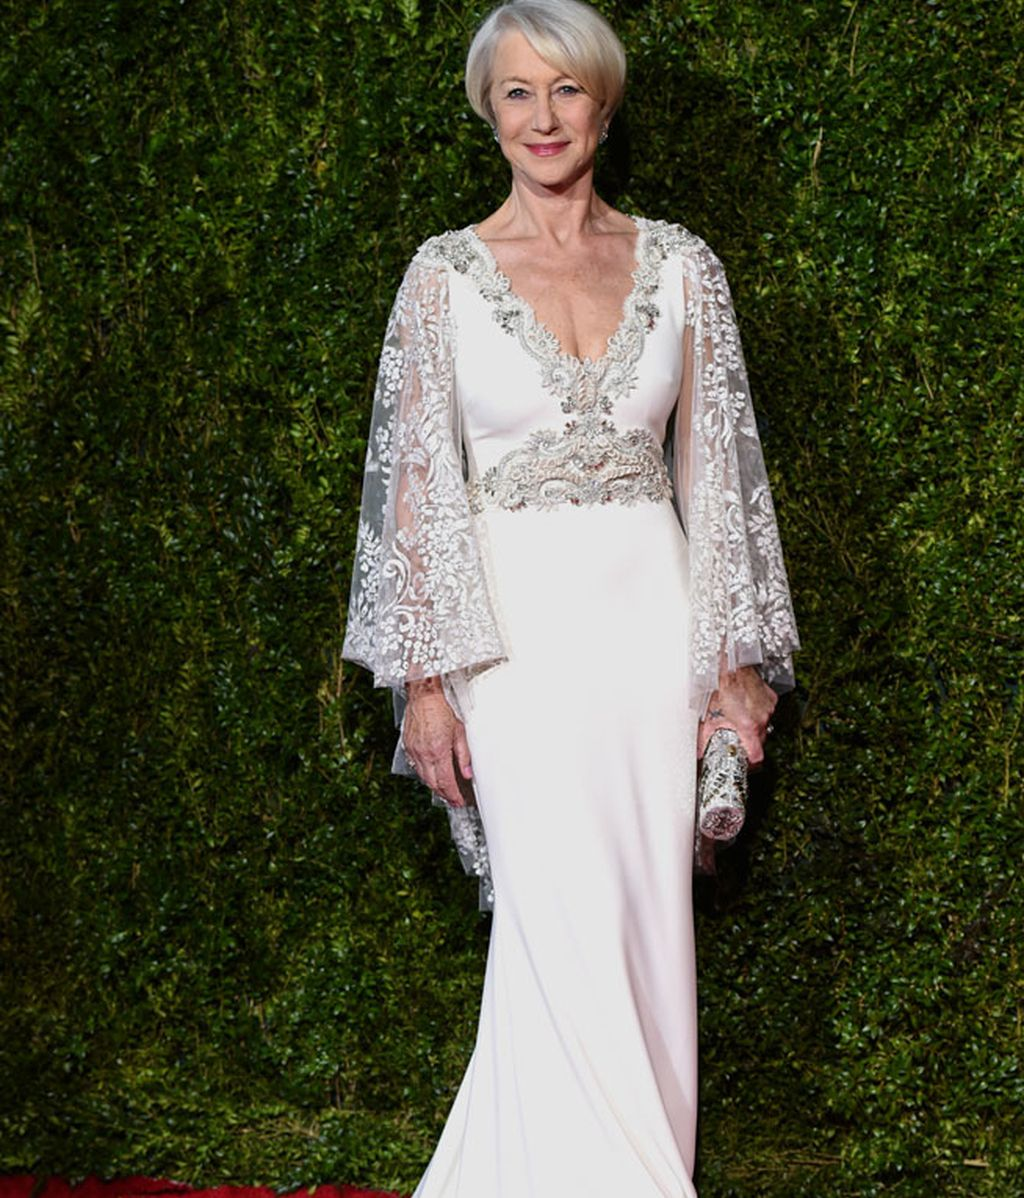 Helen Mirren eligió un Badgley Mischka en color blanco y plata